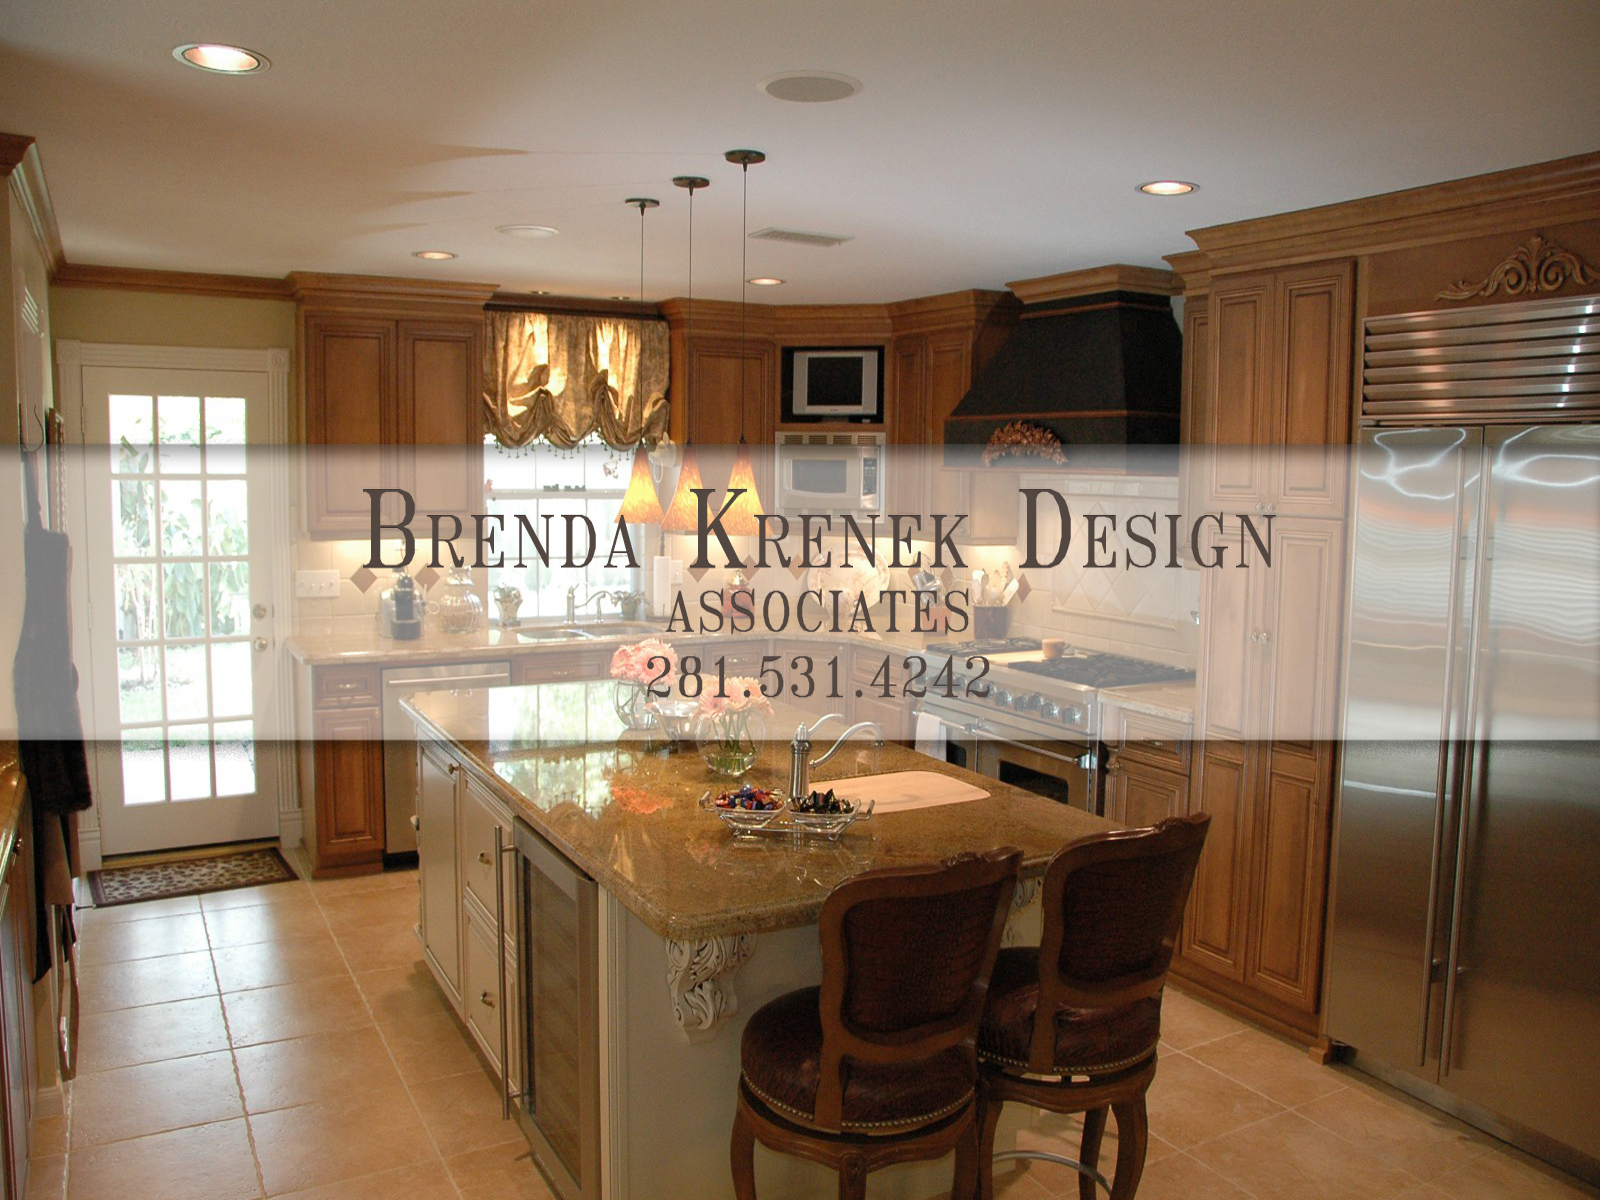 Interior Designer Memorial Houston  Montgomery County  The Woodlands     Interior Designer Memorial Houston  Montgomery County  The Woodlands  Lake  Conroe   Interior Remodeling Contractor